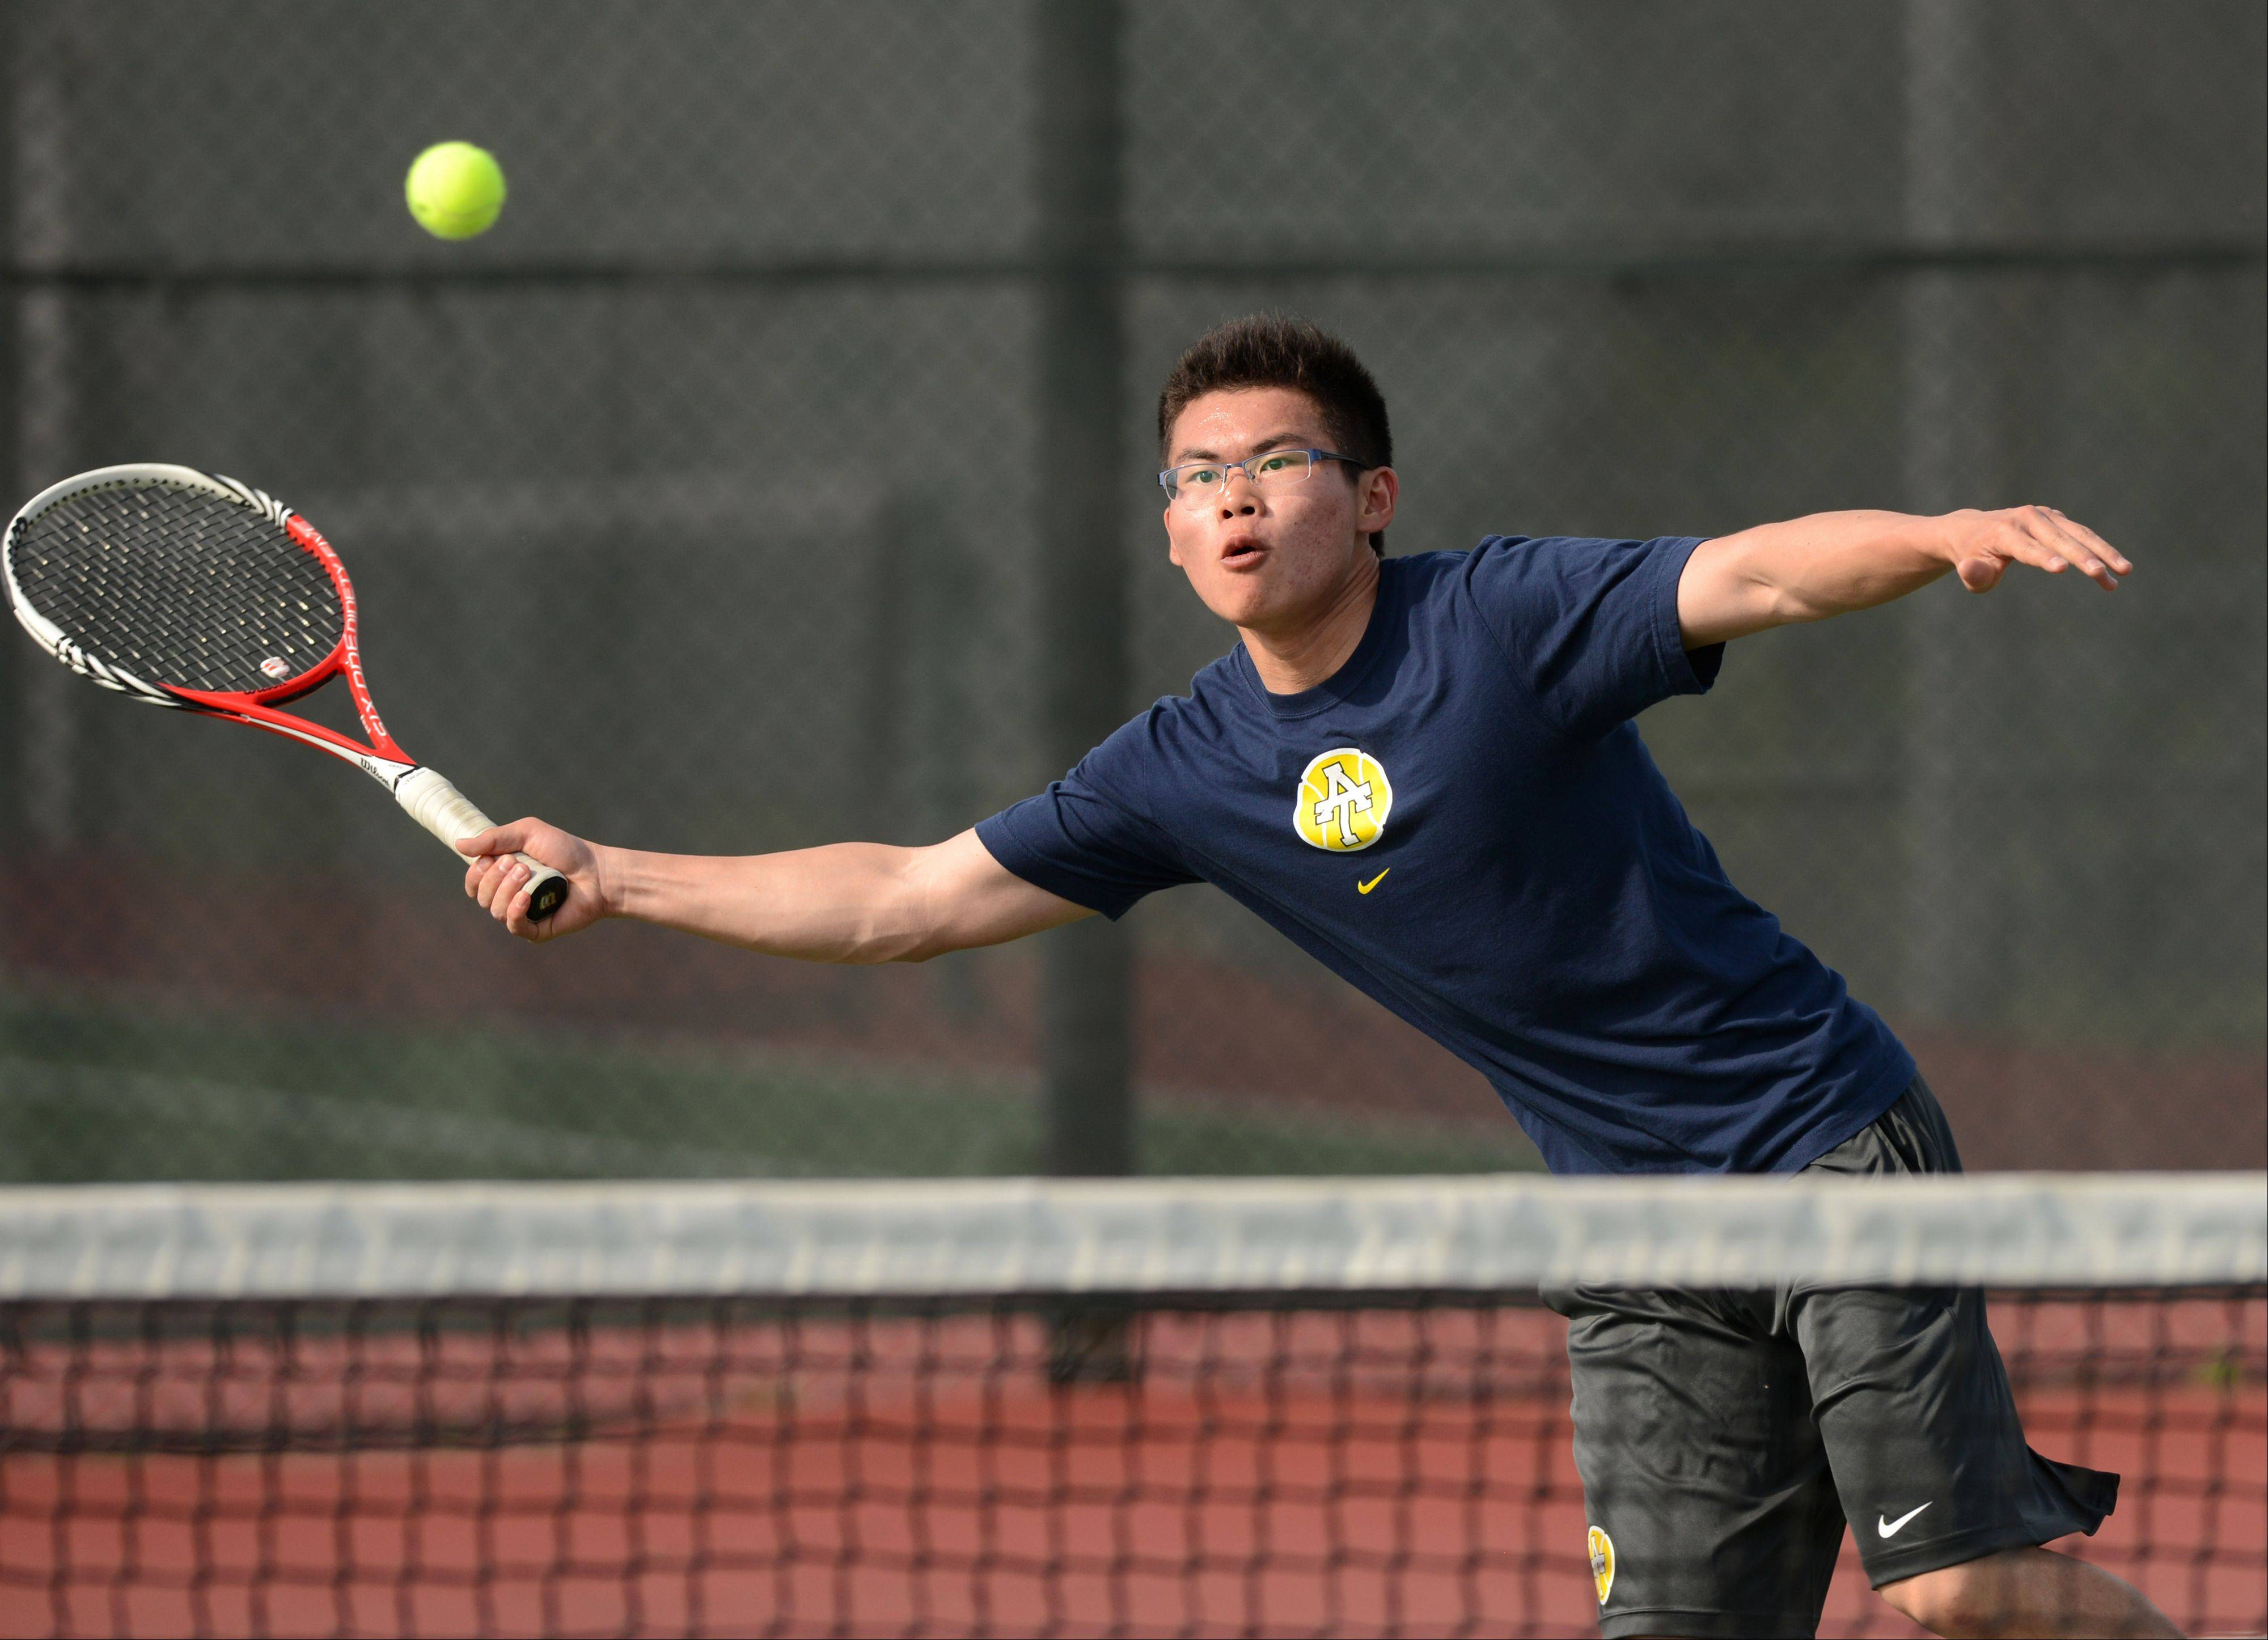 Addison Trail Lan Lin plays against Glenbard South's Brendan Colgan during Monday's varsity boys tennis match in Glen Ellyn.